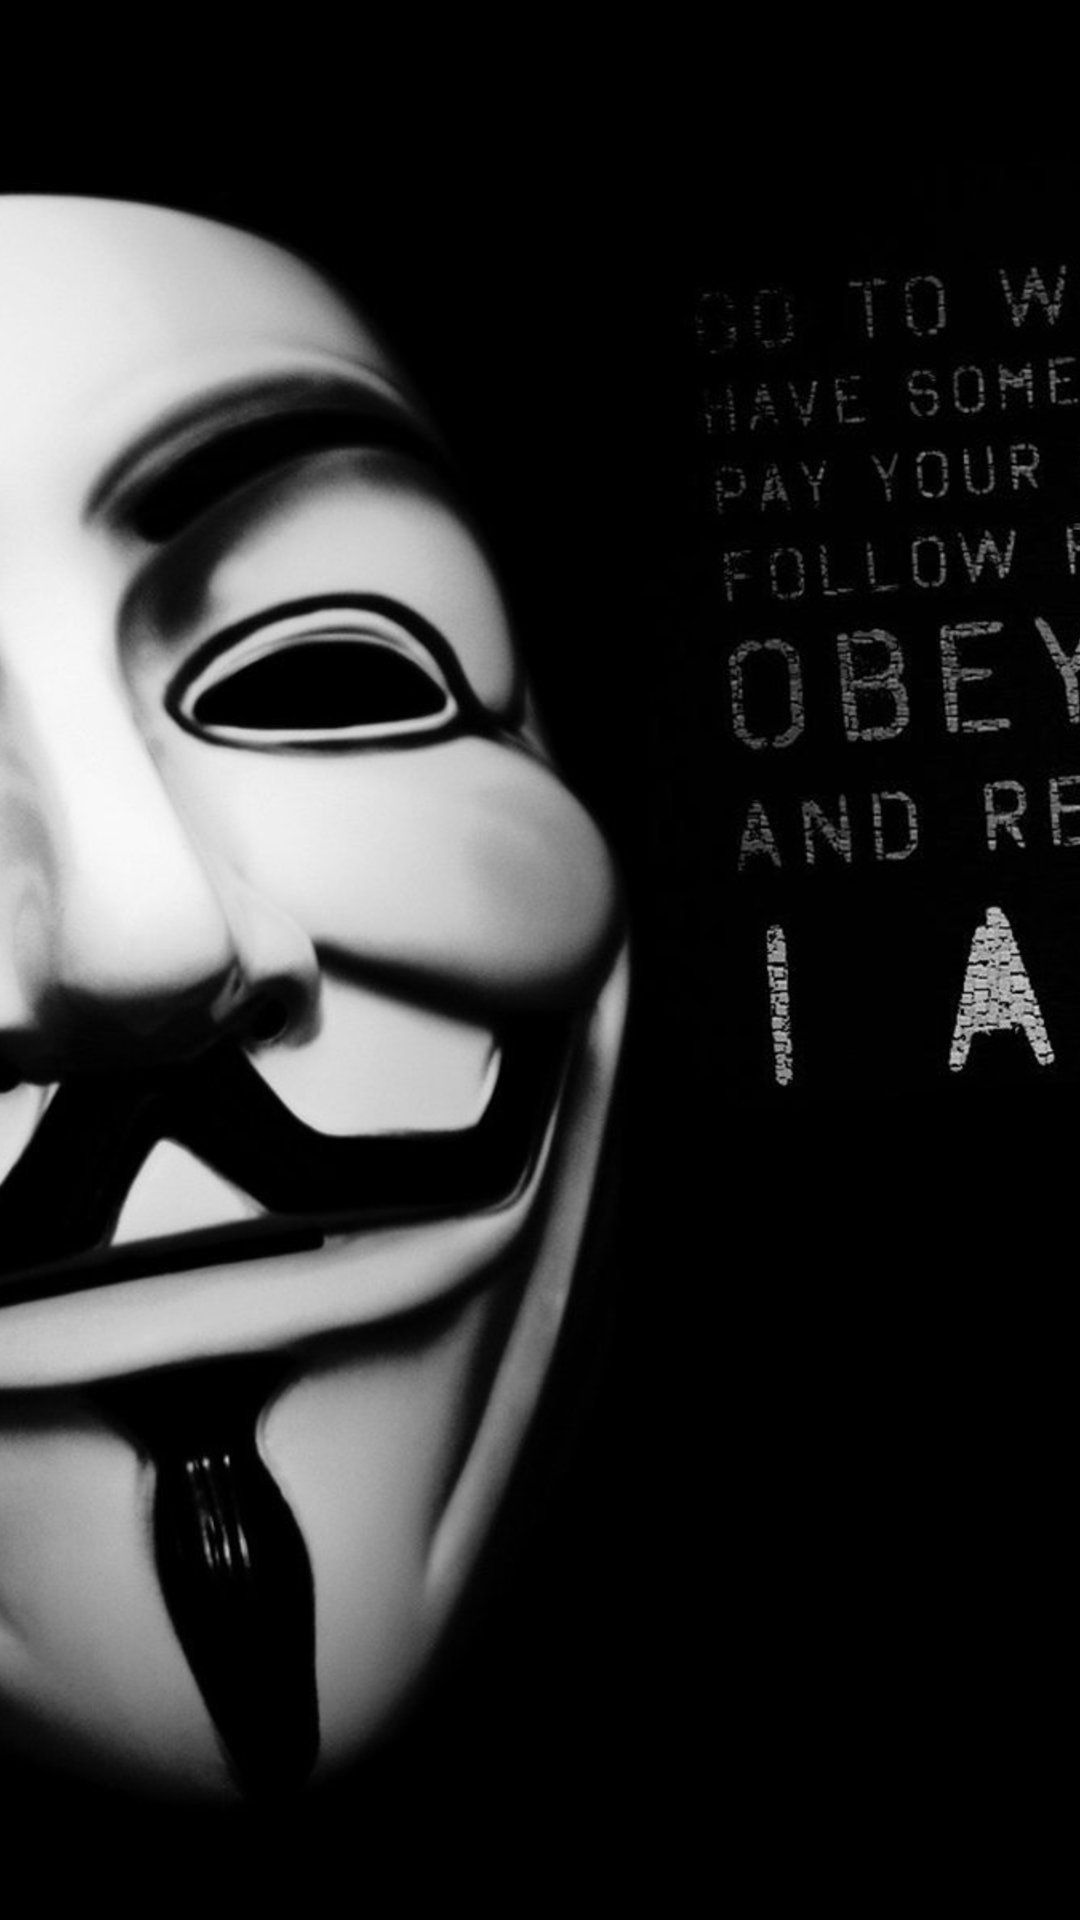 Anonymous Full HD Wallpaper for Iphone.